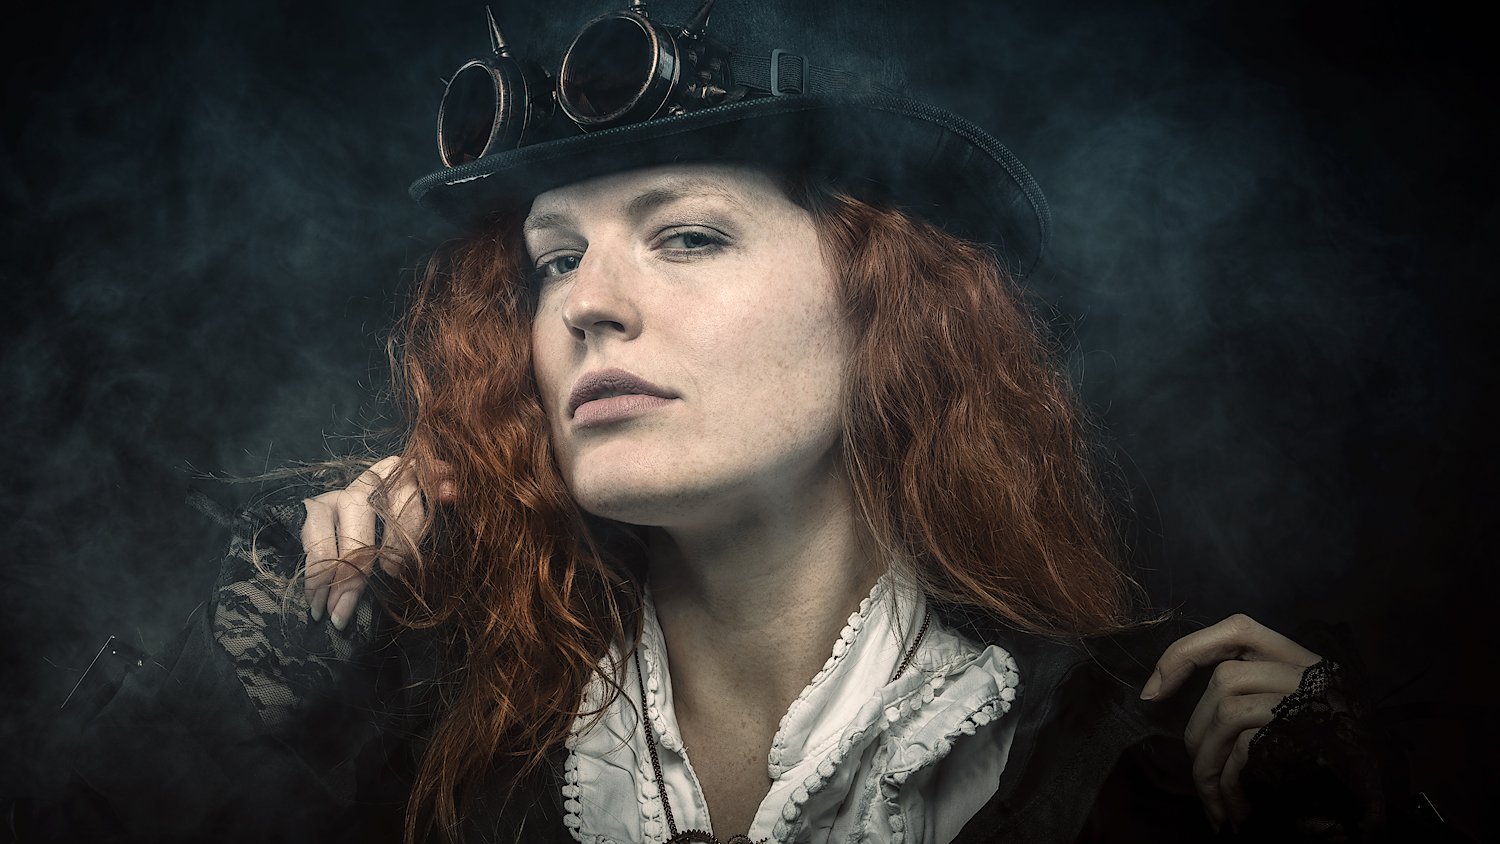 S. Wickenkamp - Portraitfotografie & Peoplefotografie - Steampunk-Portrait Model Fiodora - Workshop Portraitfotografie